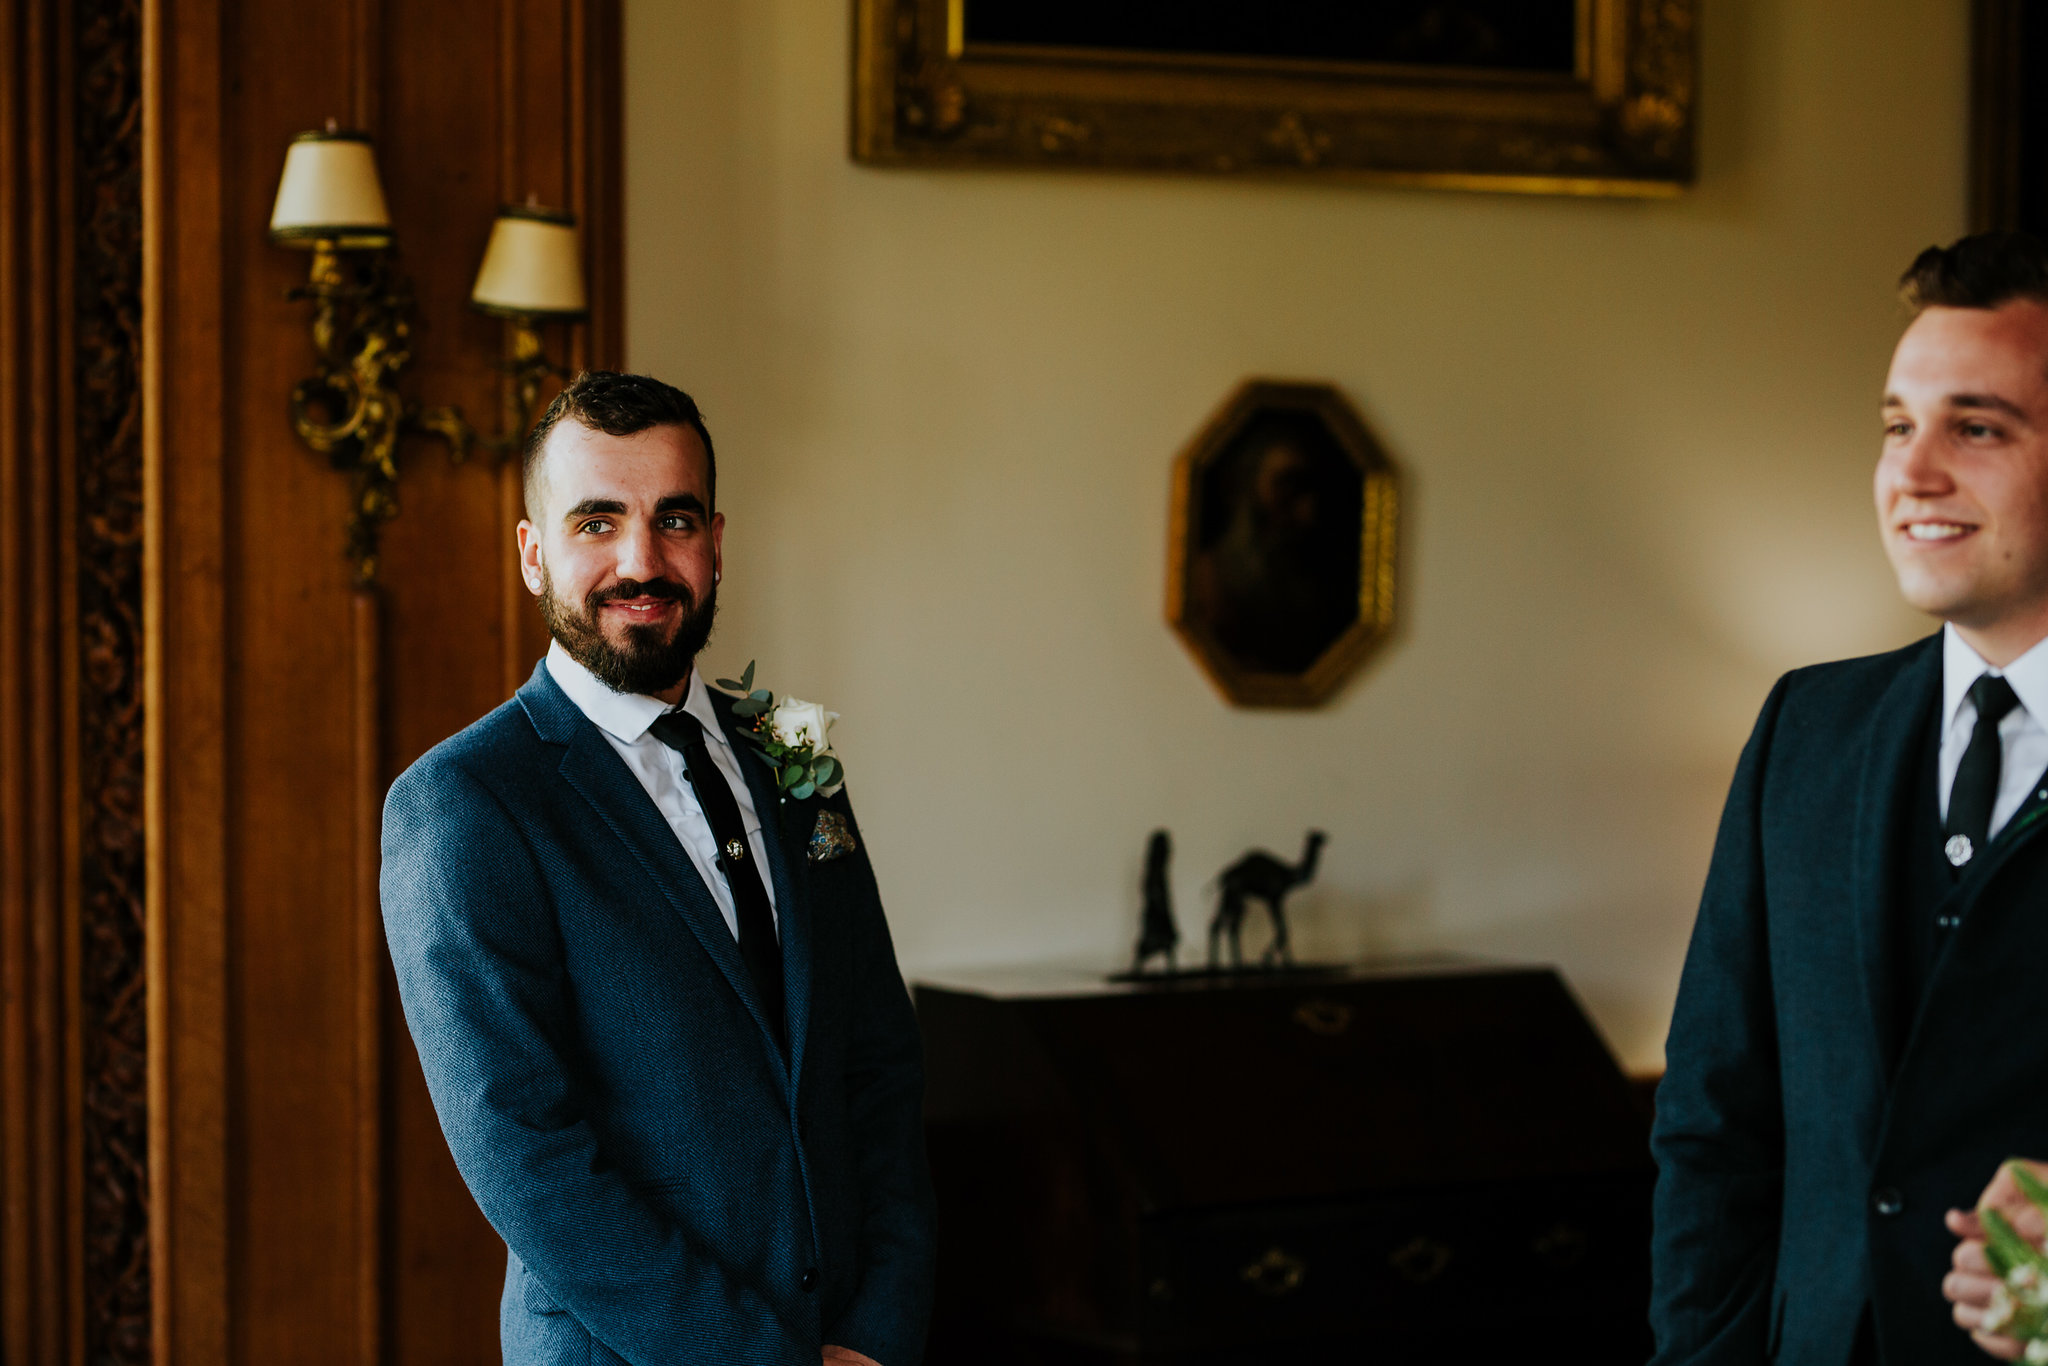 Duns_Castle_wedding_photographer_ross_alexander_photography (45).jpg